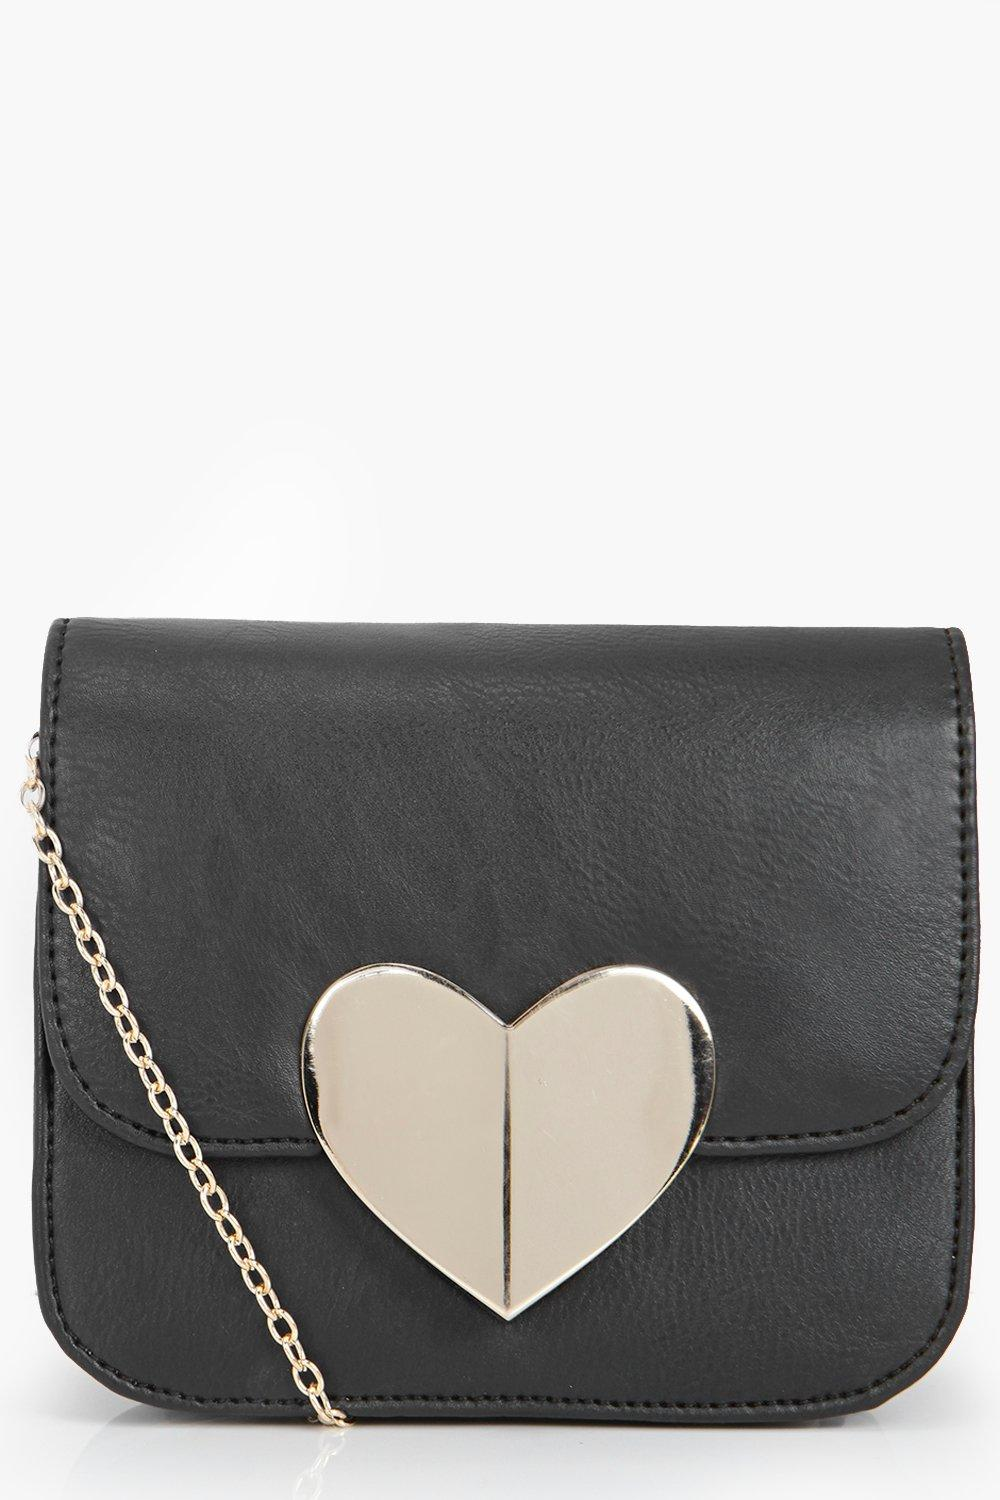 Mia Metal Heart Cross Body Bag